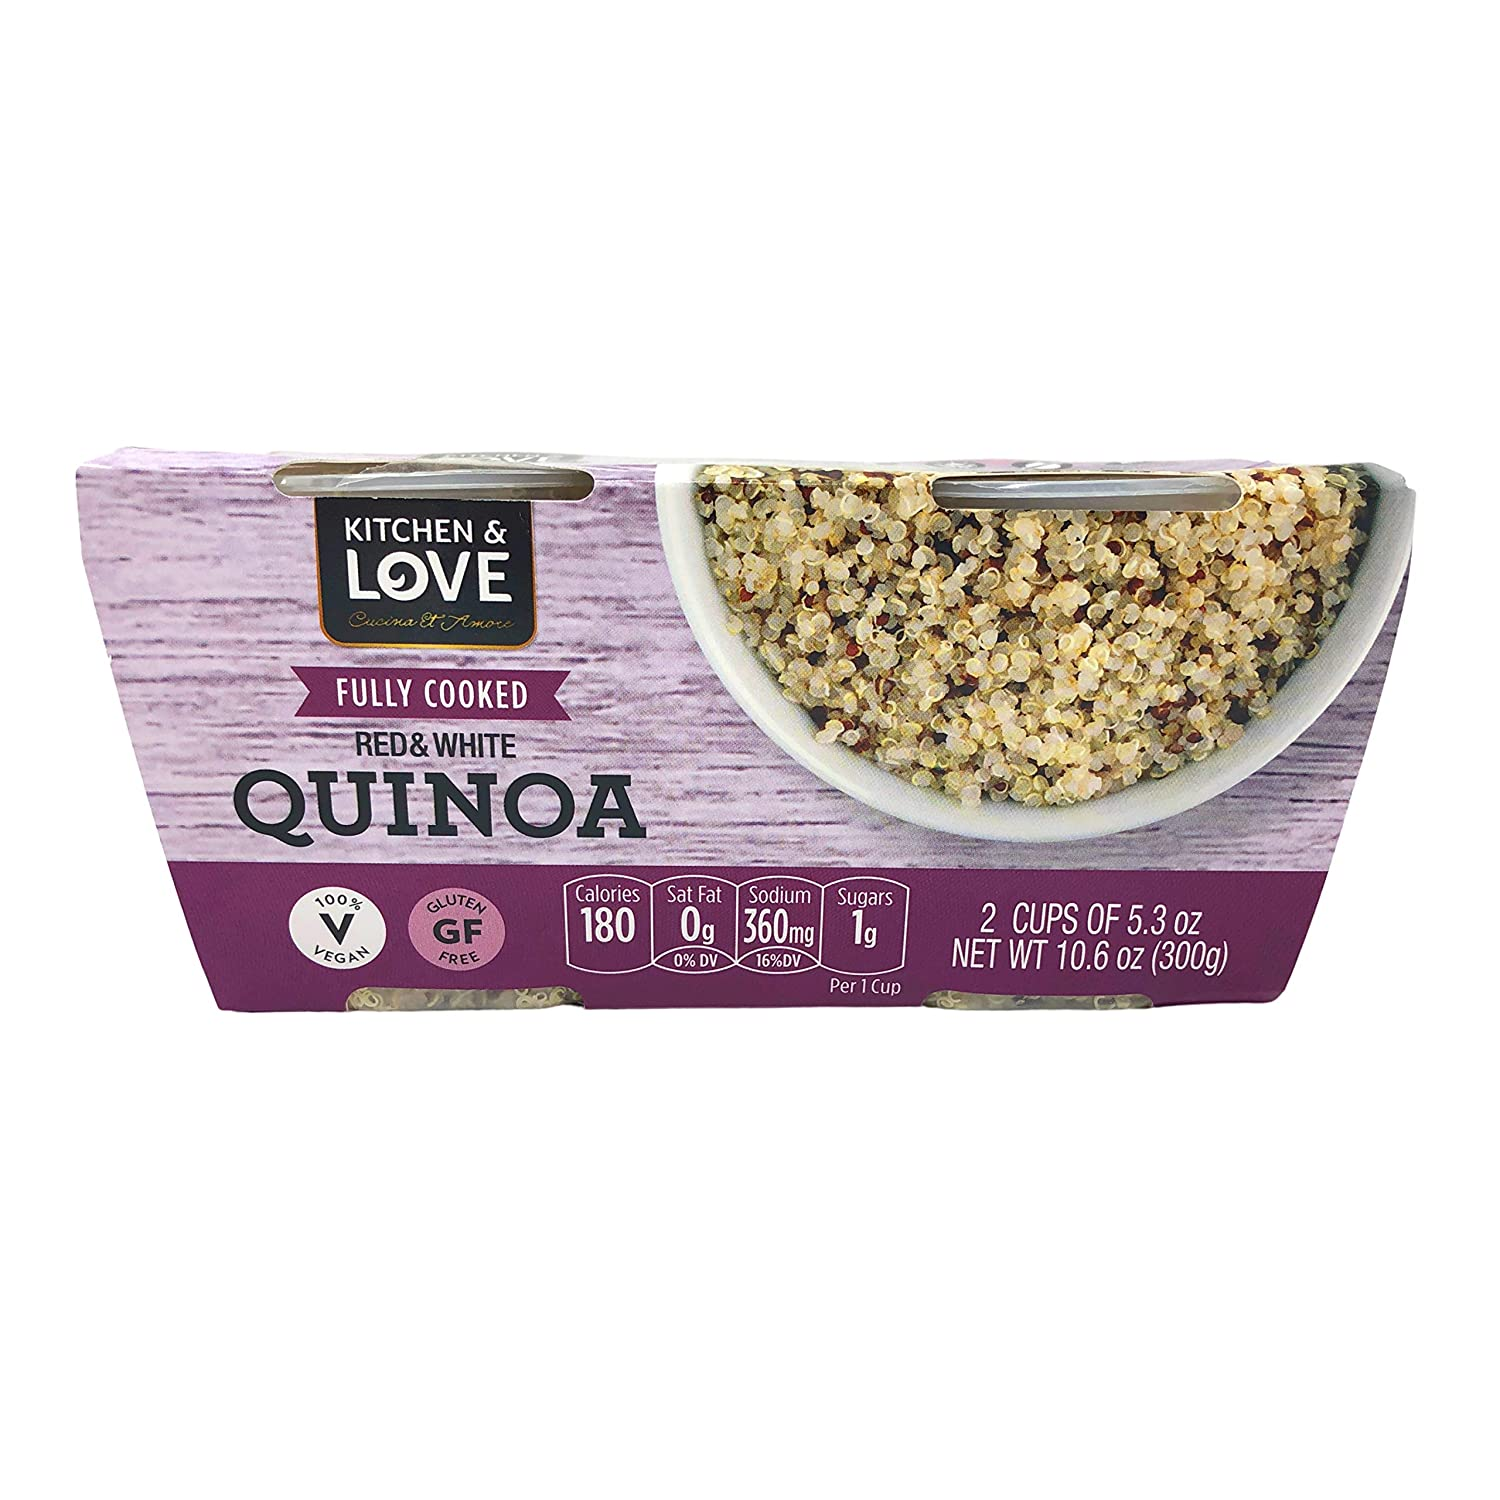 Kitchen & Love Fully Cooked Red & White Quinoa 12-Cups   Vegan, Gluten-Free, Ready-to-Eat, No Refrigeration Required